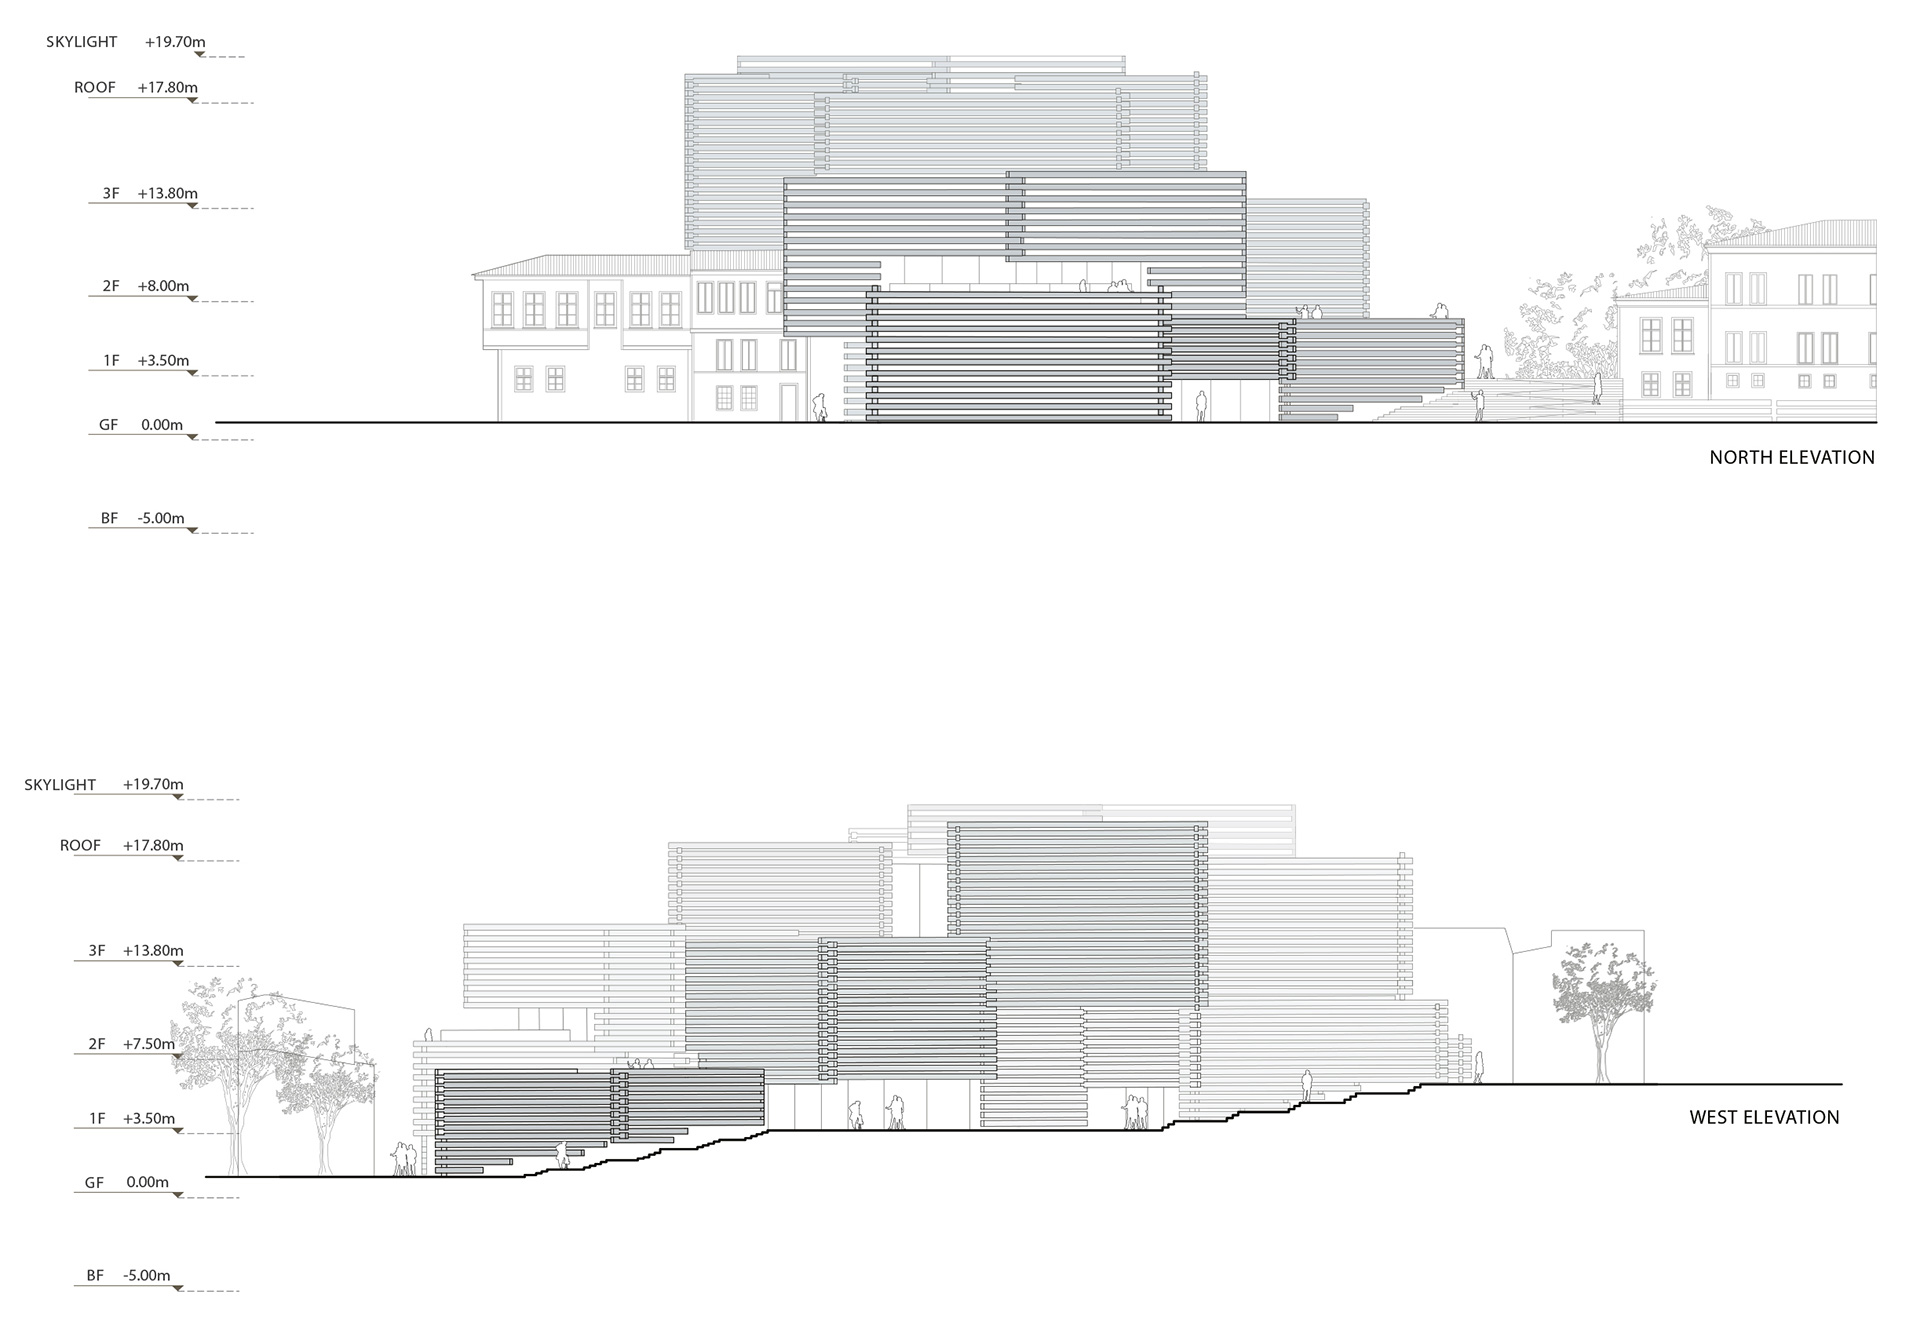 Elevations - OMM | Odunpazari Modern Museum| Kengo Kuma and Associates | STIR